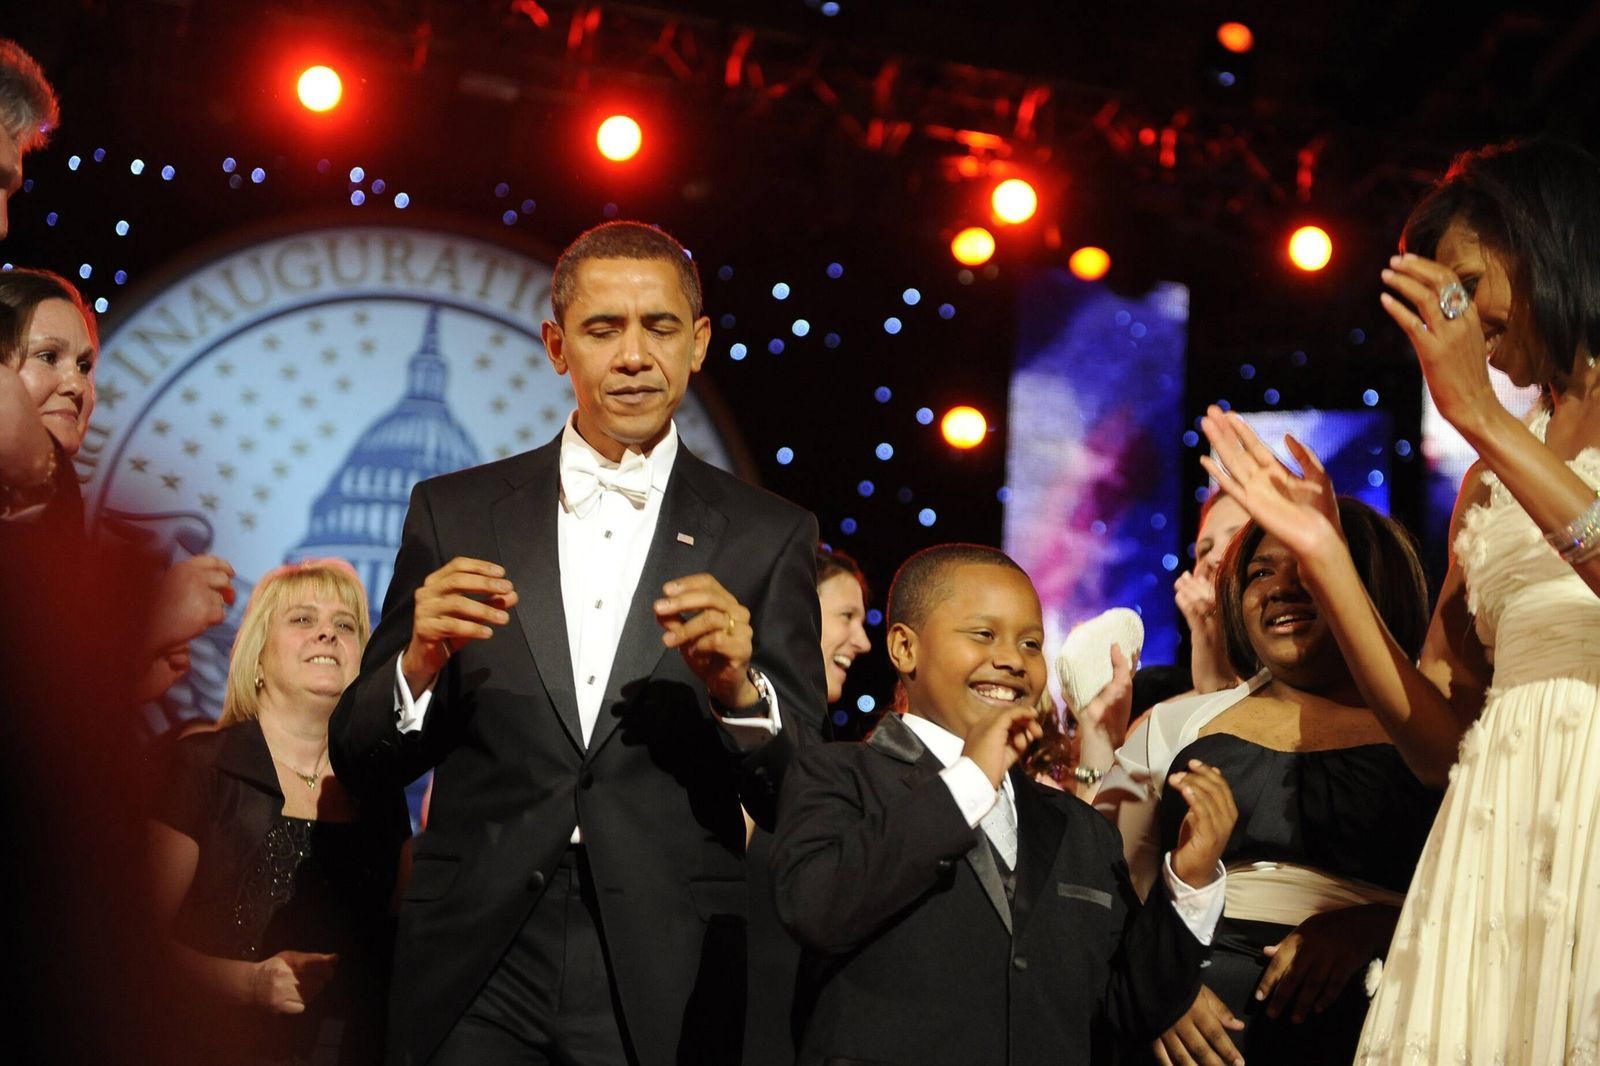 President and Michelle Obama dance with guests at the Neighborhood Ball. Michelle is wearing an ivory chiffon one should